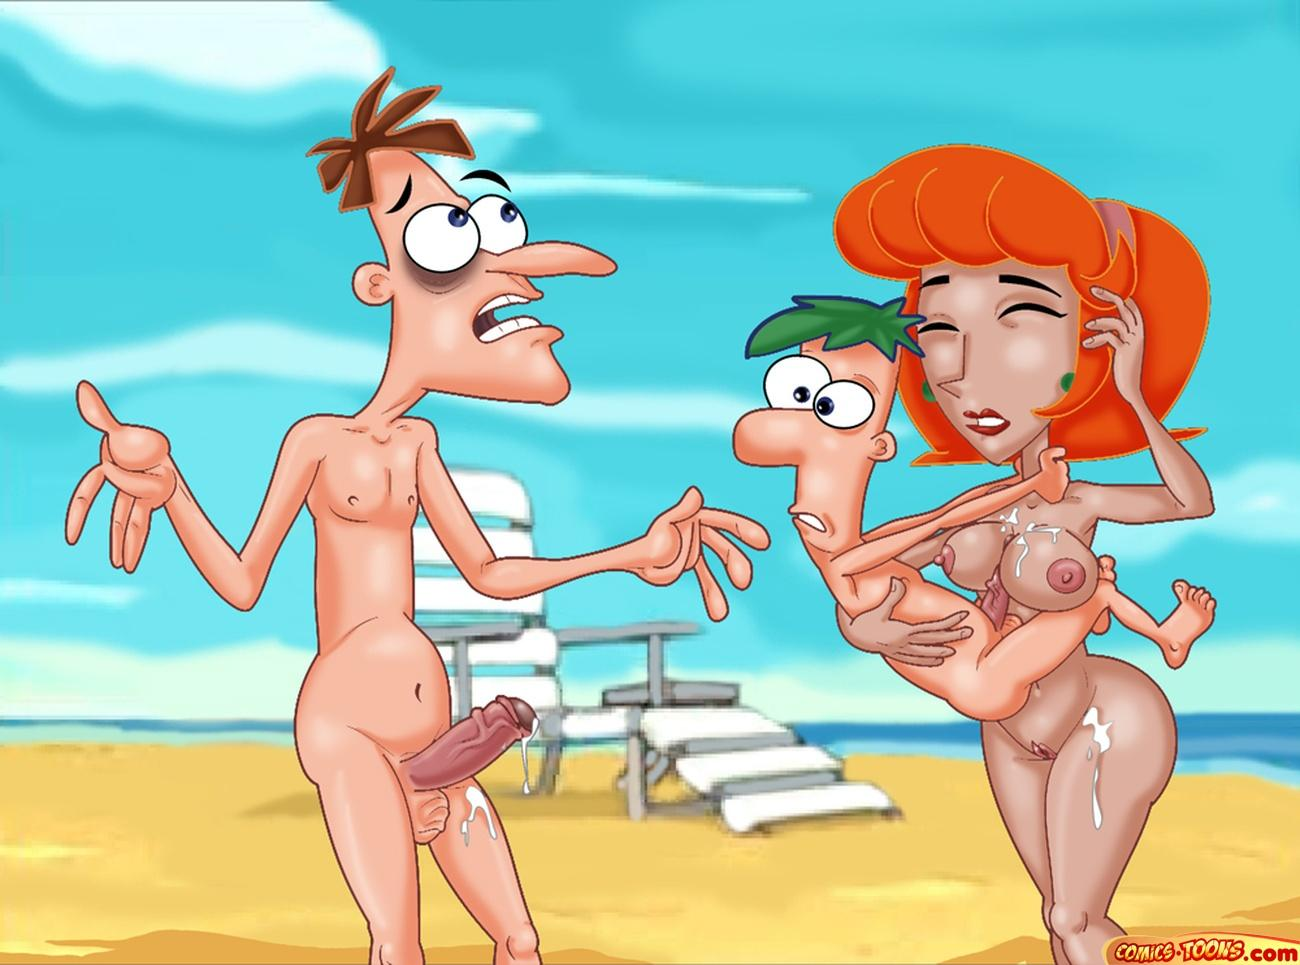 phineas y ferb comic porno Wii fit trainer and villager